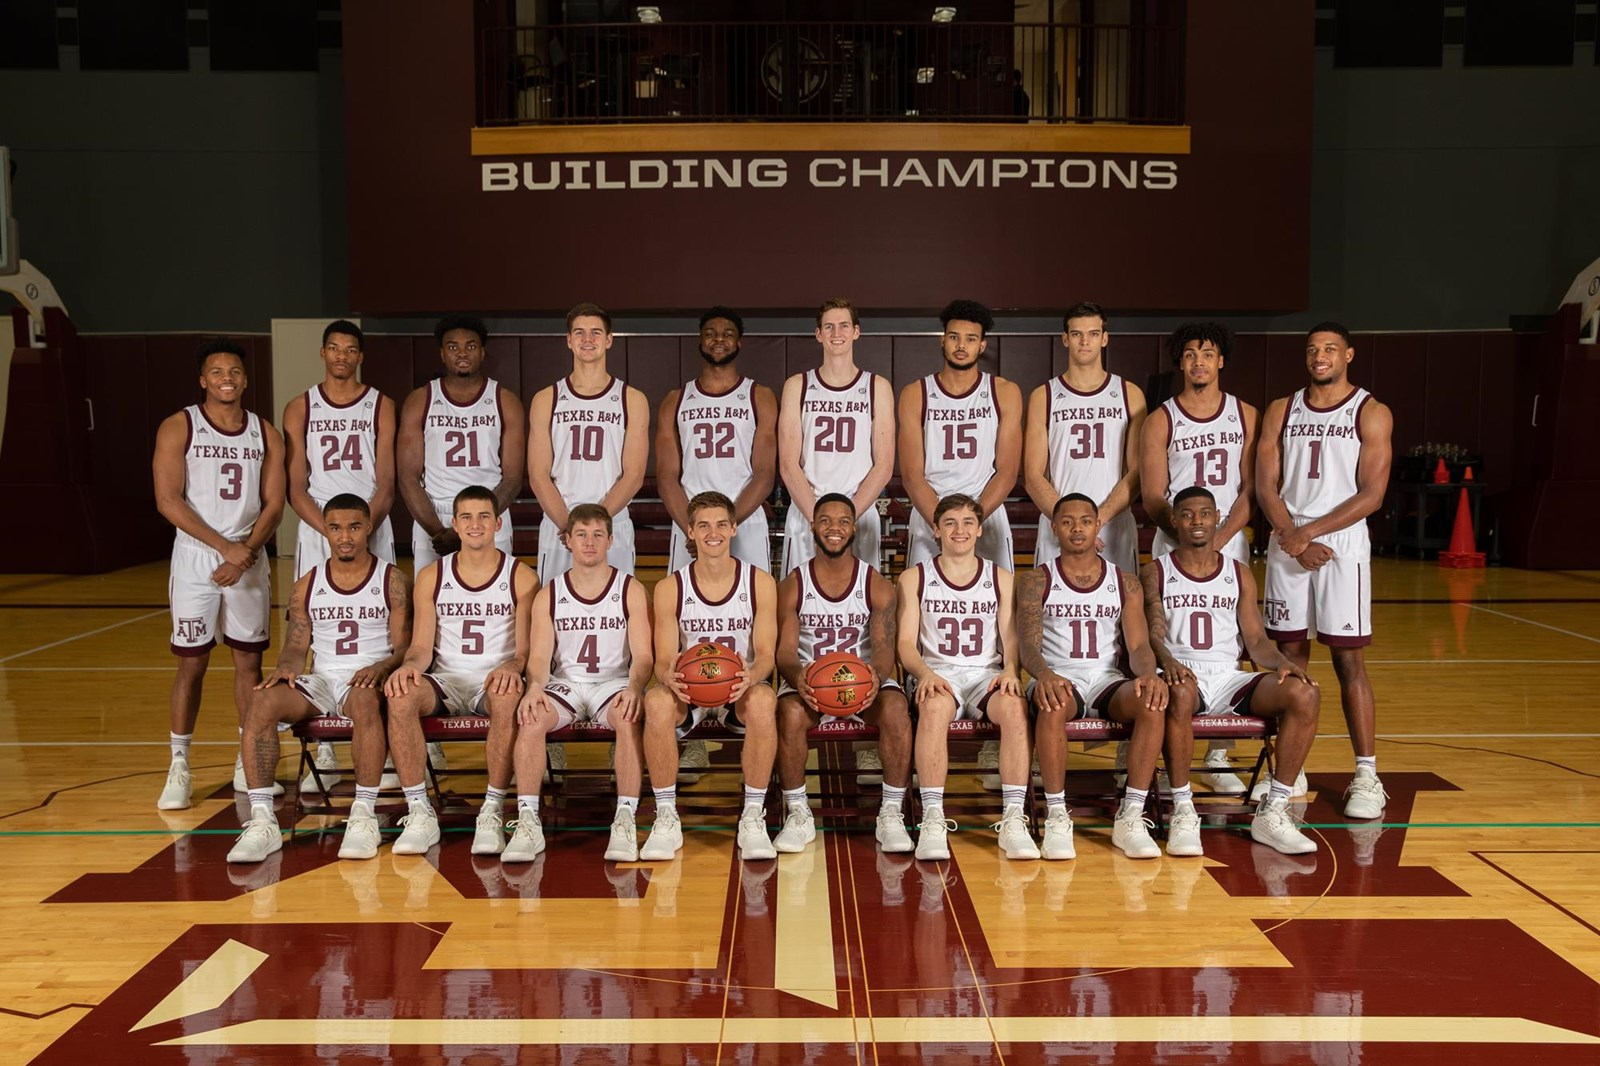 new arrival 4a76c 52877 2018-19 Men's Basketball Roster - Texas A&M Athletics - Home ...